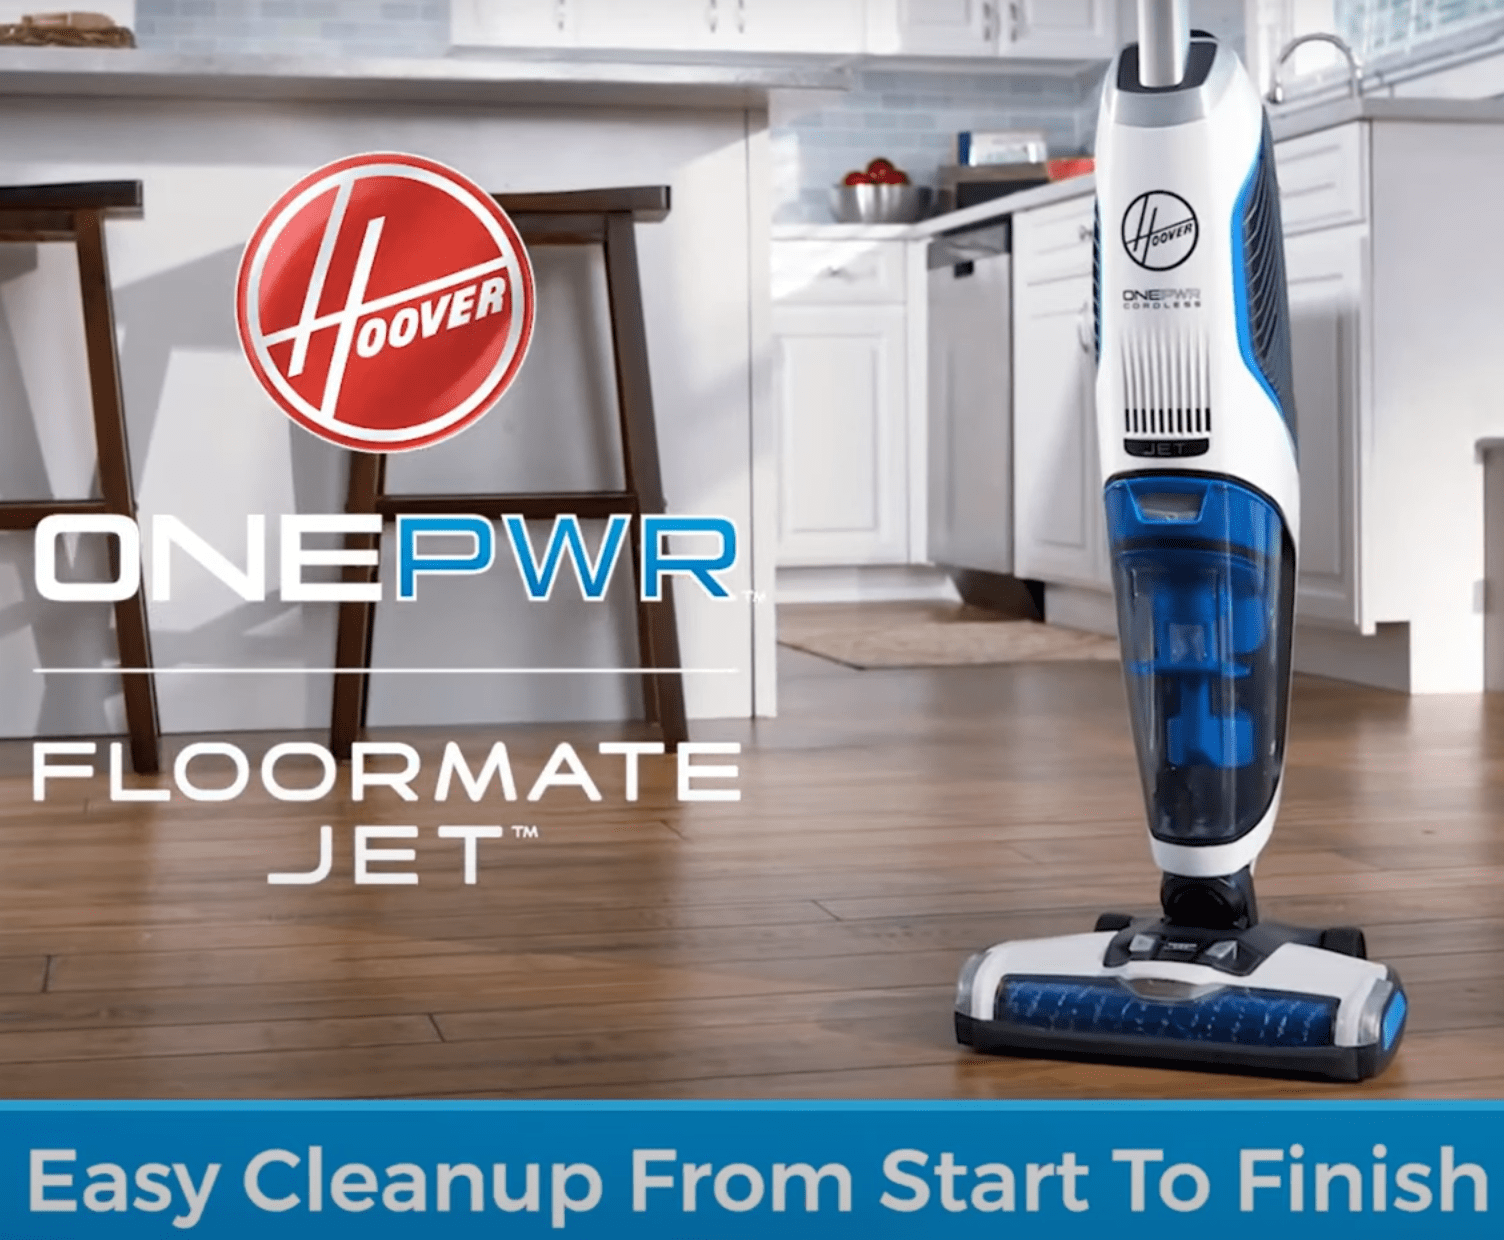 Hoover ONEPWR Cordless FloorMate Jet